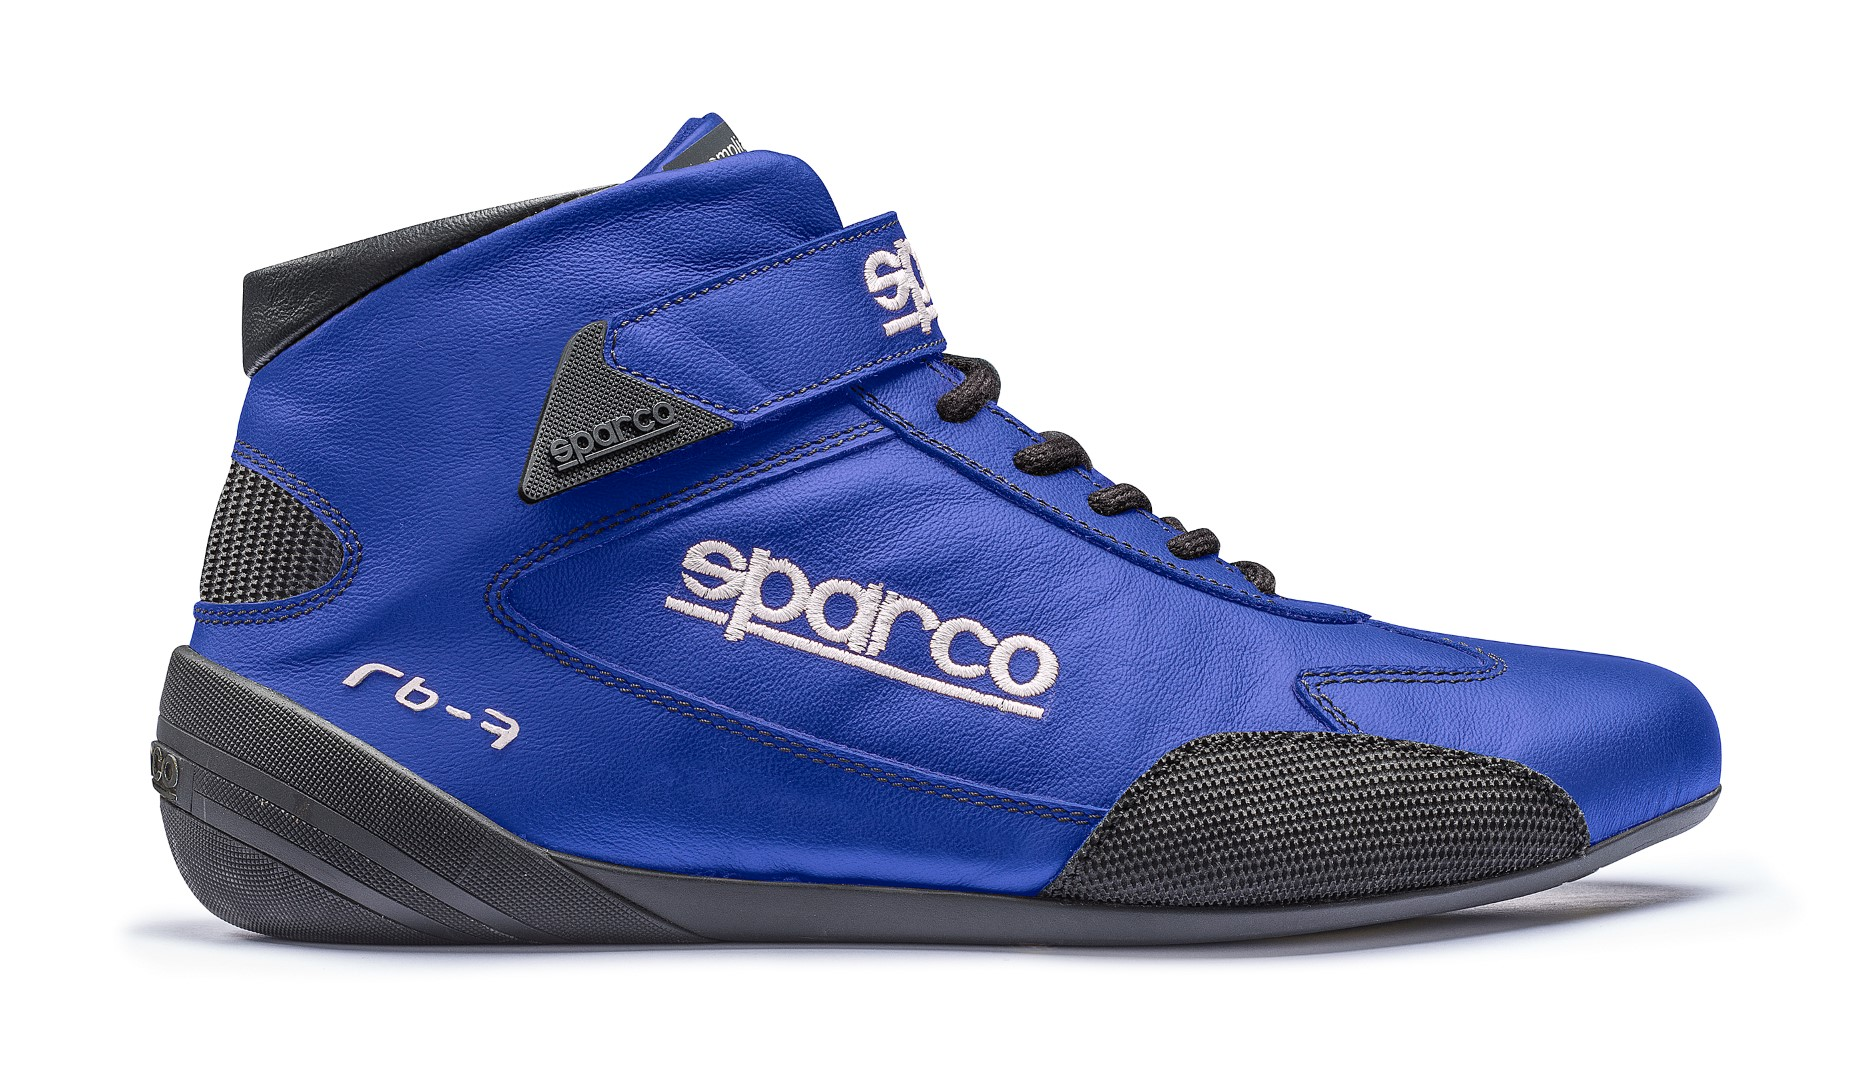 Sparco Blue Cross RB-7 Driving Shoes EU 48 | US 14 - 00122448AZ